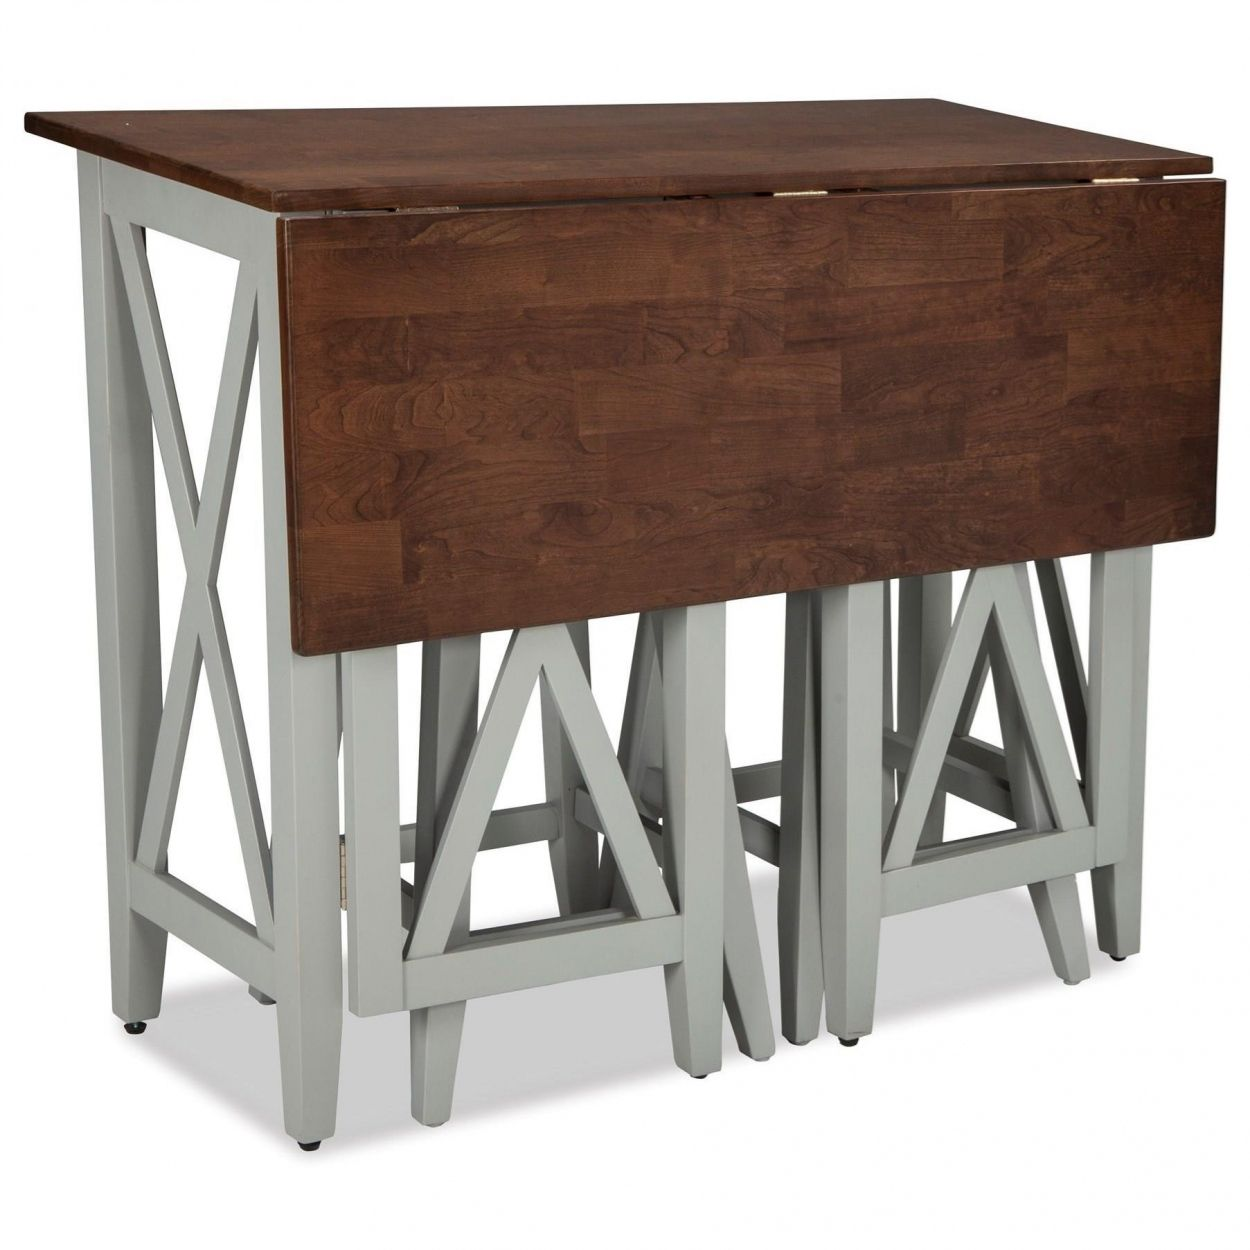 breakfast bars furniture. Breakfast Bars Furniture - Best Spray Paint For Wood Check More At Http:/ Pinterest